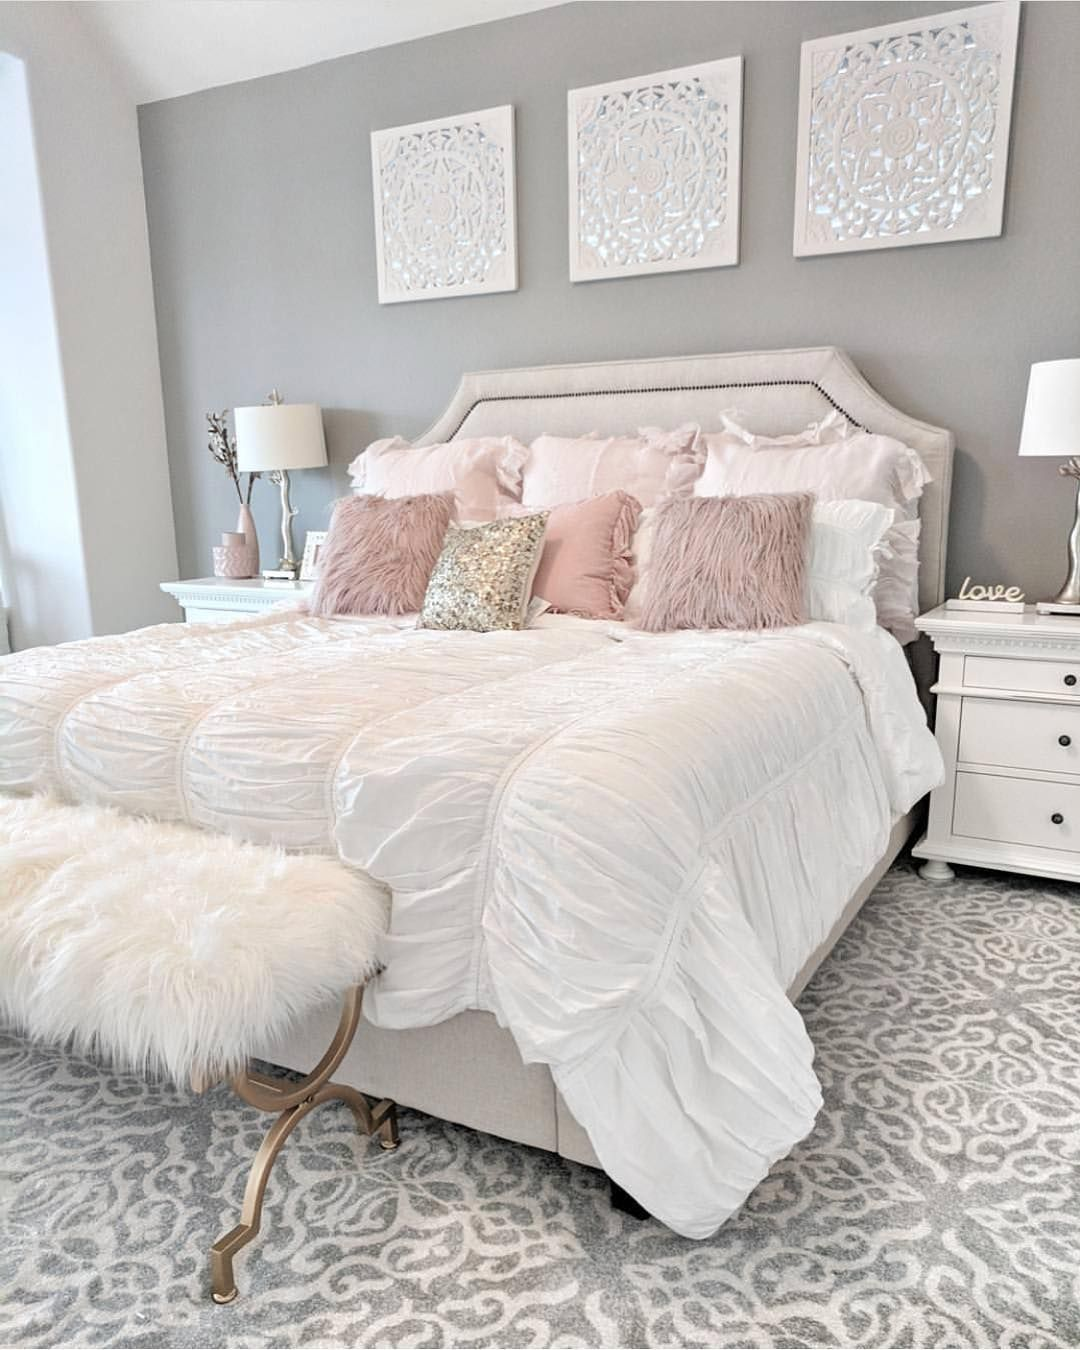 Beautiful Bedroom So Chic And Cozy By Rqcharminghomes Beauty Decor Lifestyle Design Luxury Ideas Bedroom Decor Girl Bedroom Designs Girl Bedroom Decor